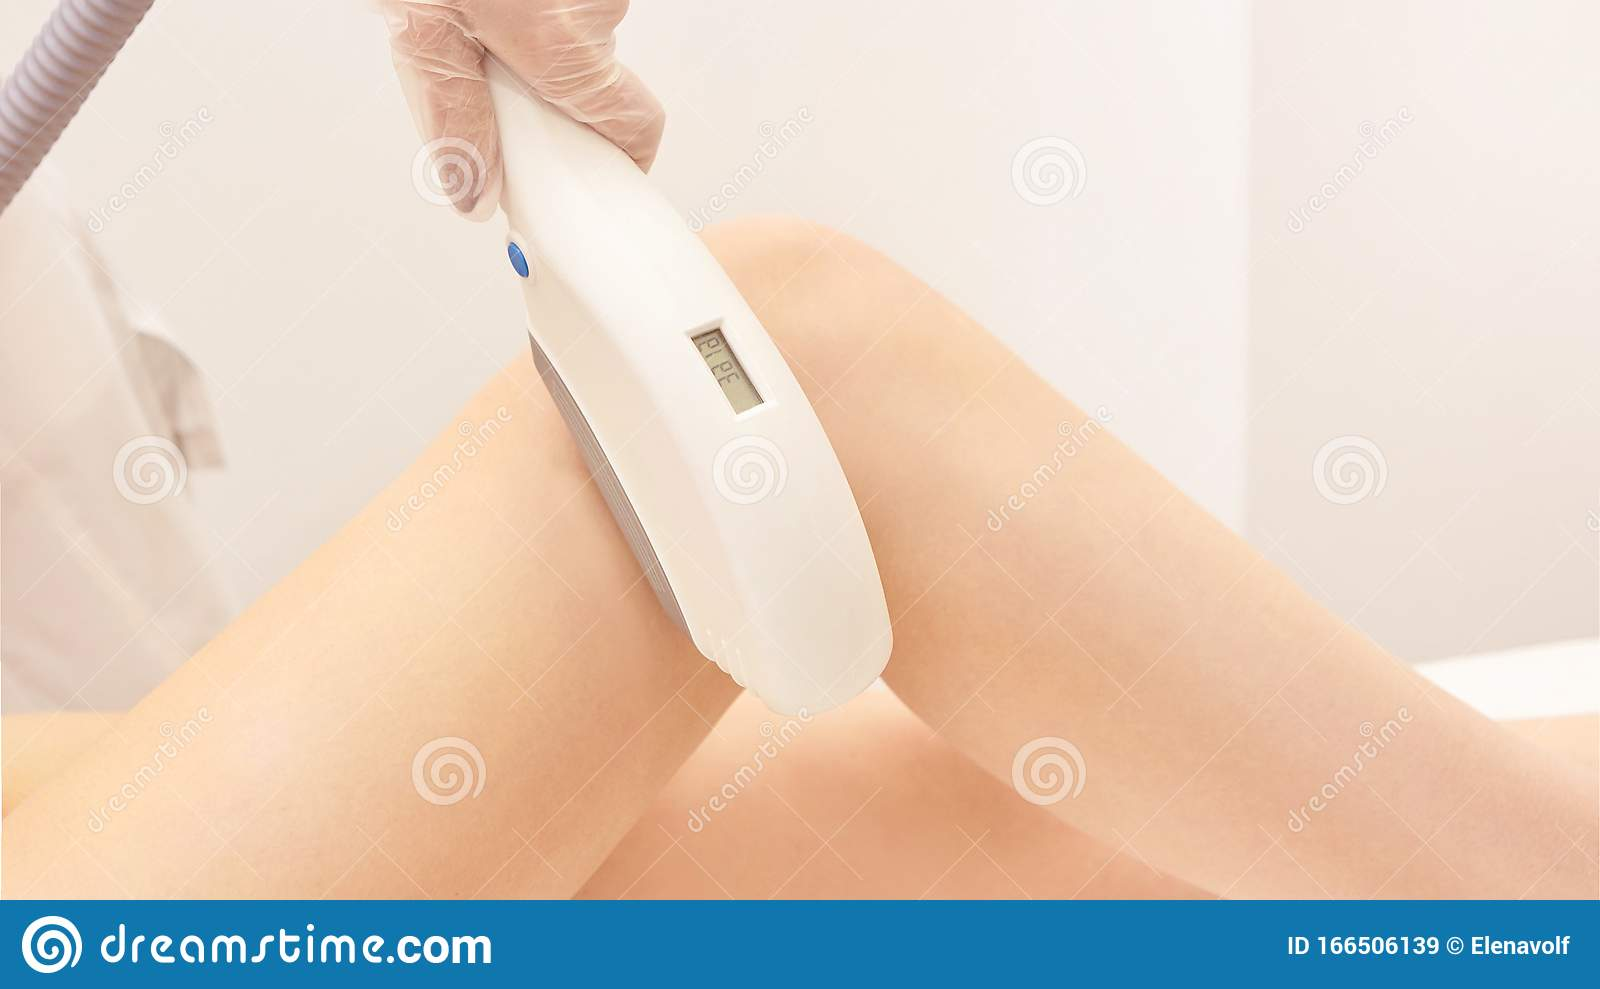 Laser Elos Medical Device  Remove Unwanted Hair And Asteriks  Cosmetology Spa Procedure At Salon